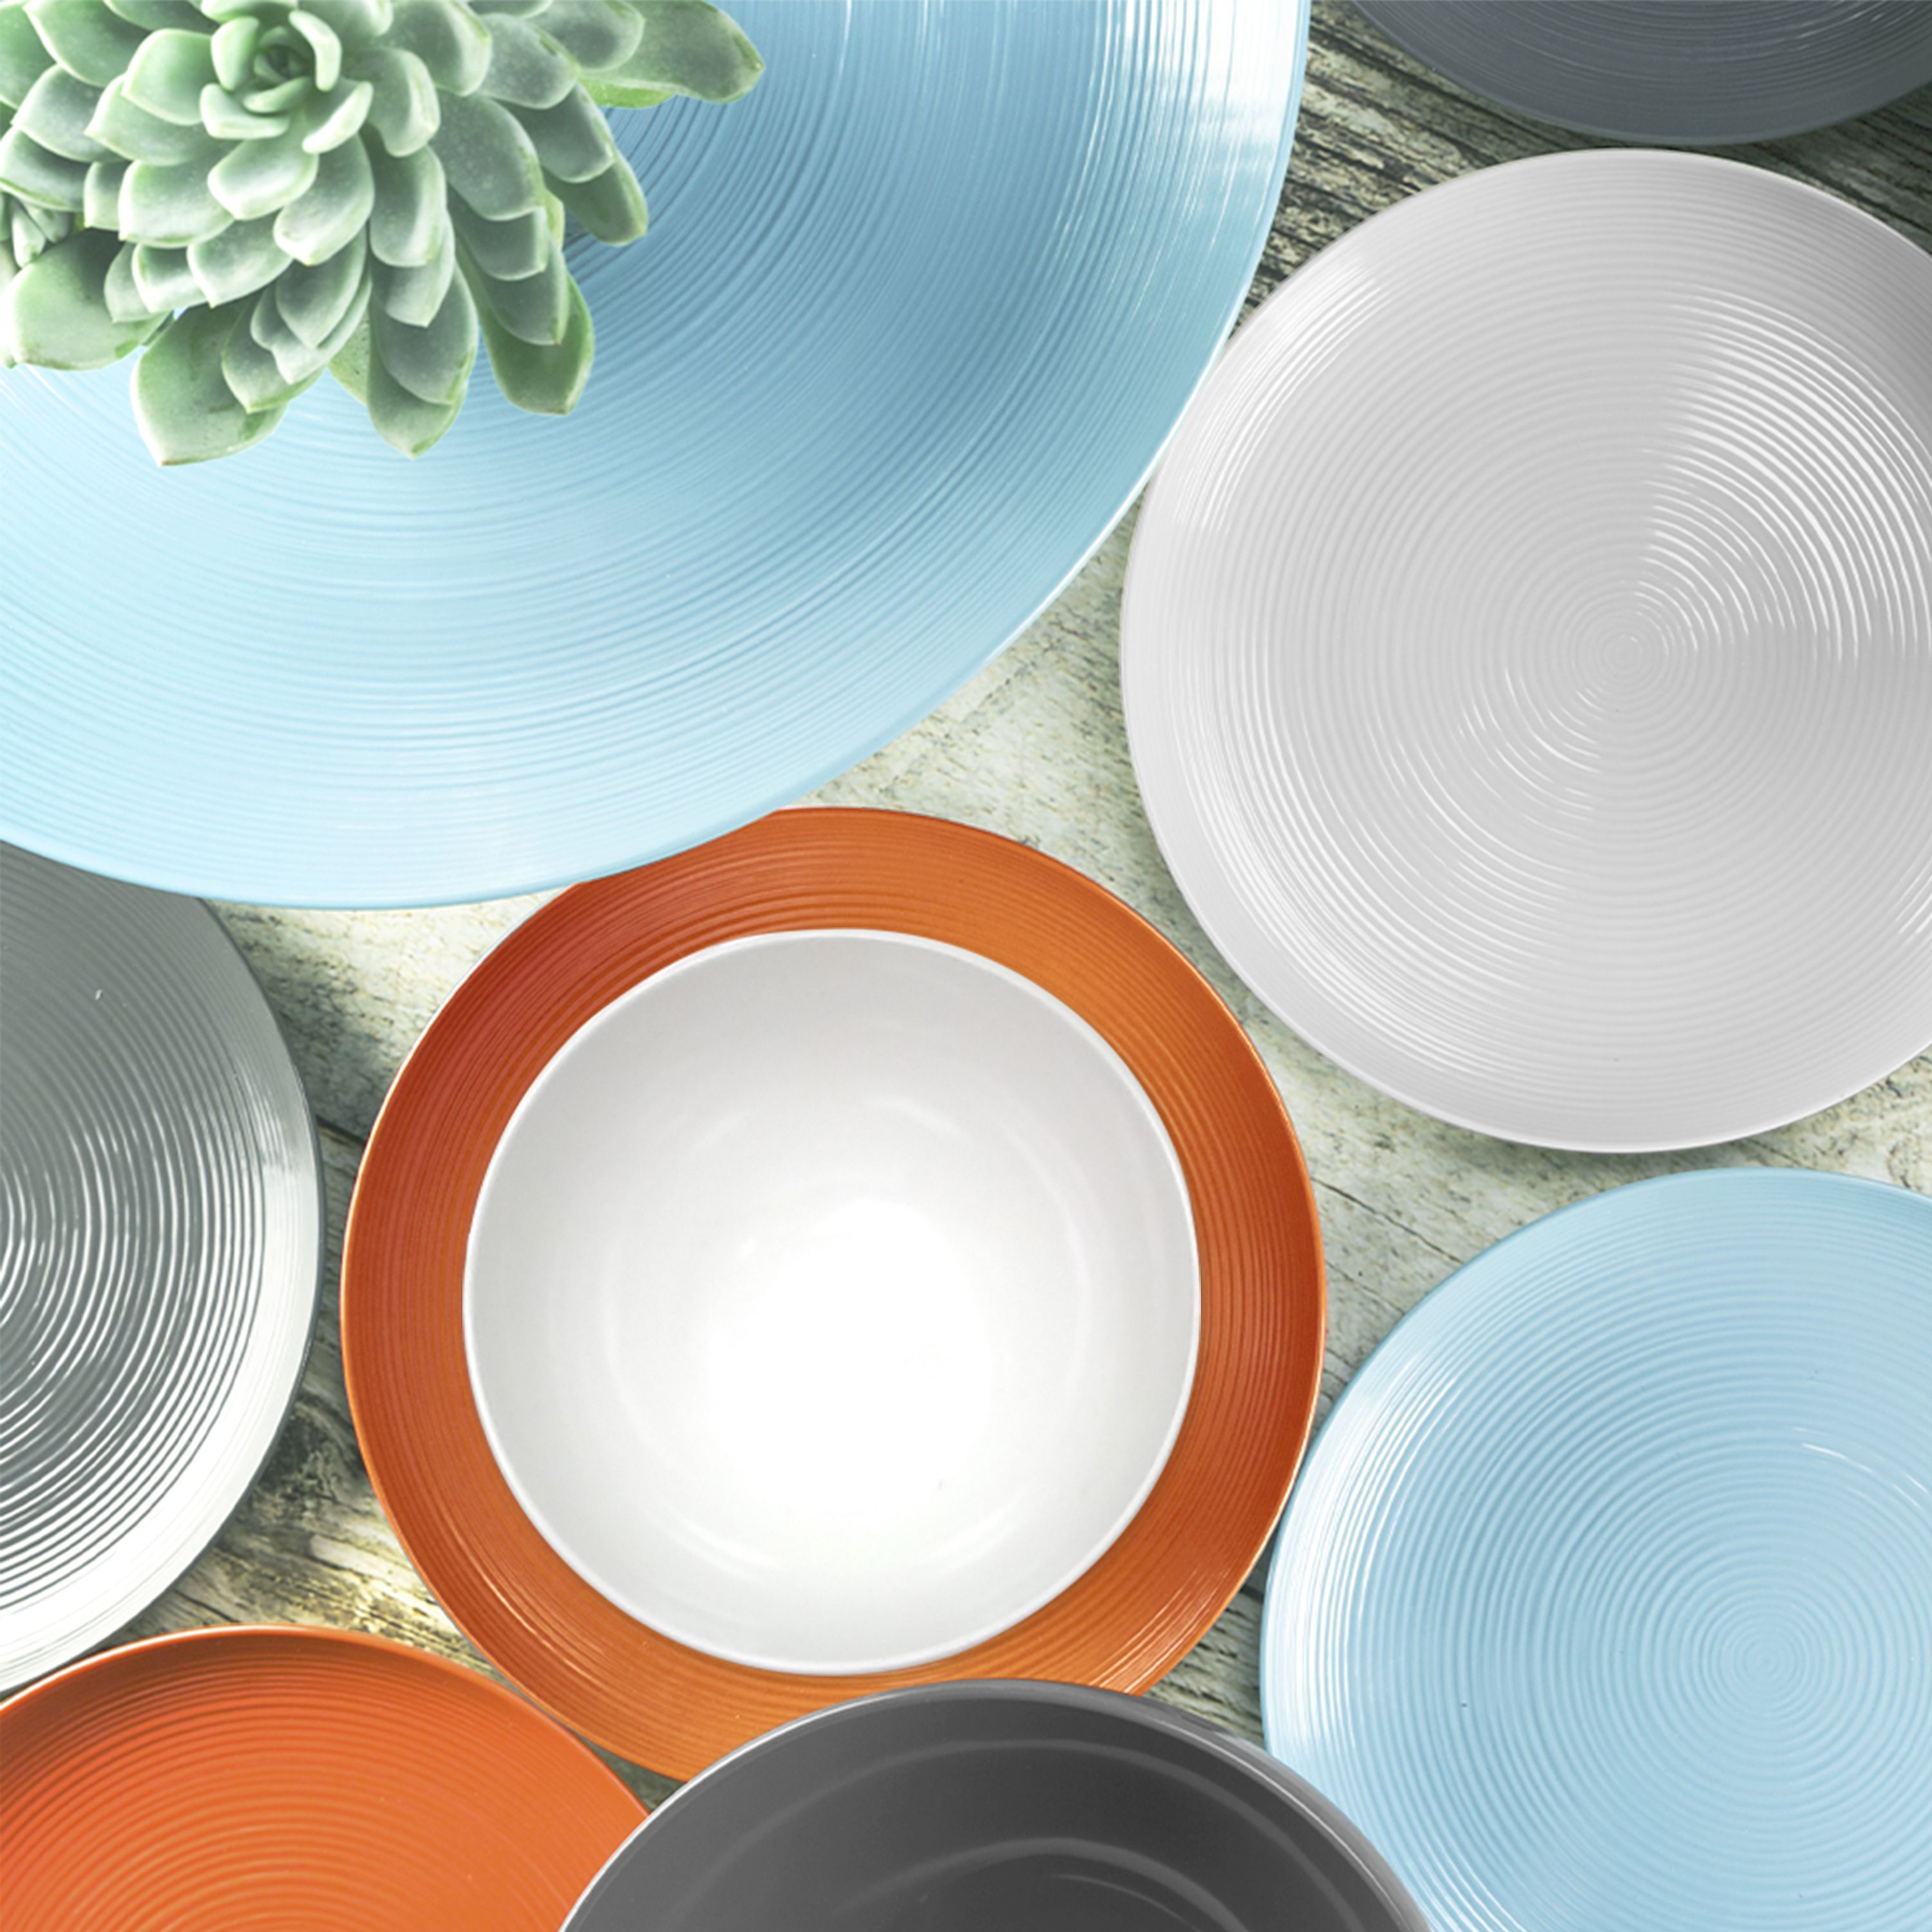 Embolden Your Table Setting By Mixing And Matching Durable Dinnerware Sets With Simple Shapes And B Melamine Dinnerware Sets Colorful Dinnerware Dinnerware Set